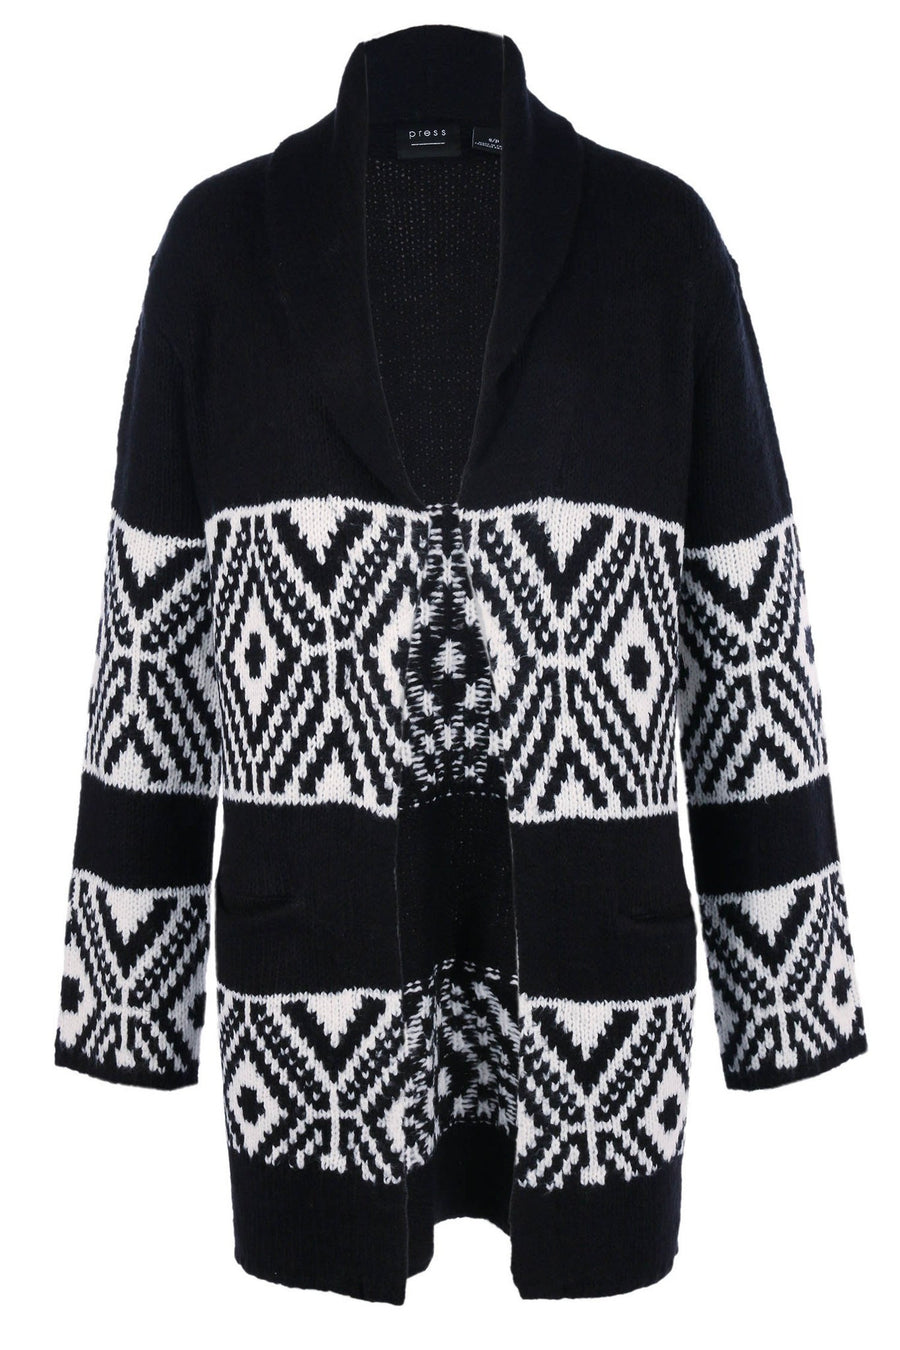 Fair Isle Jacquard Cardigan by Press Frockaholics.com